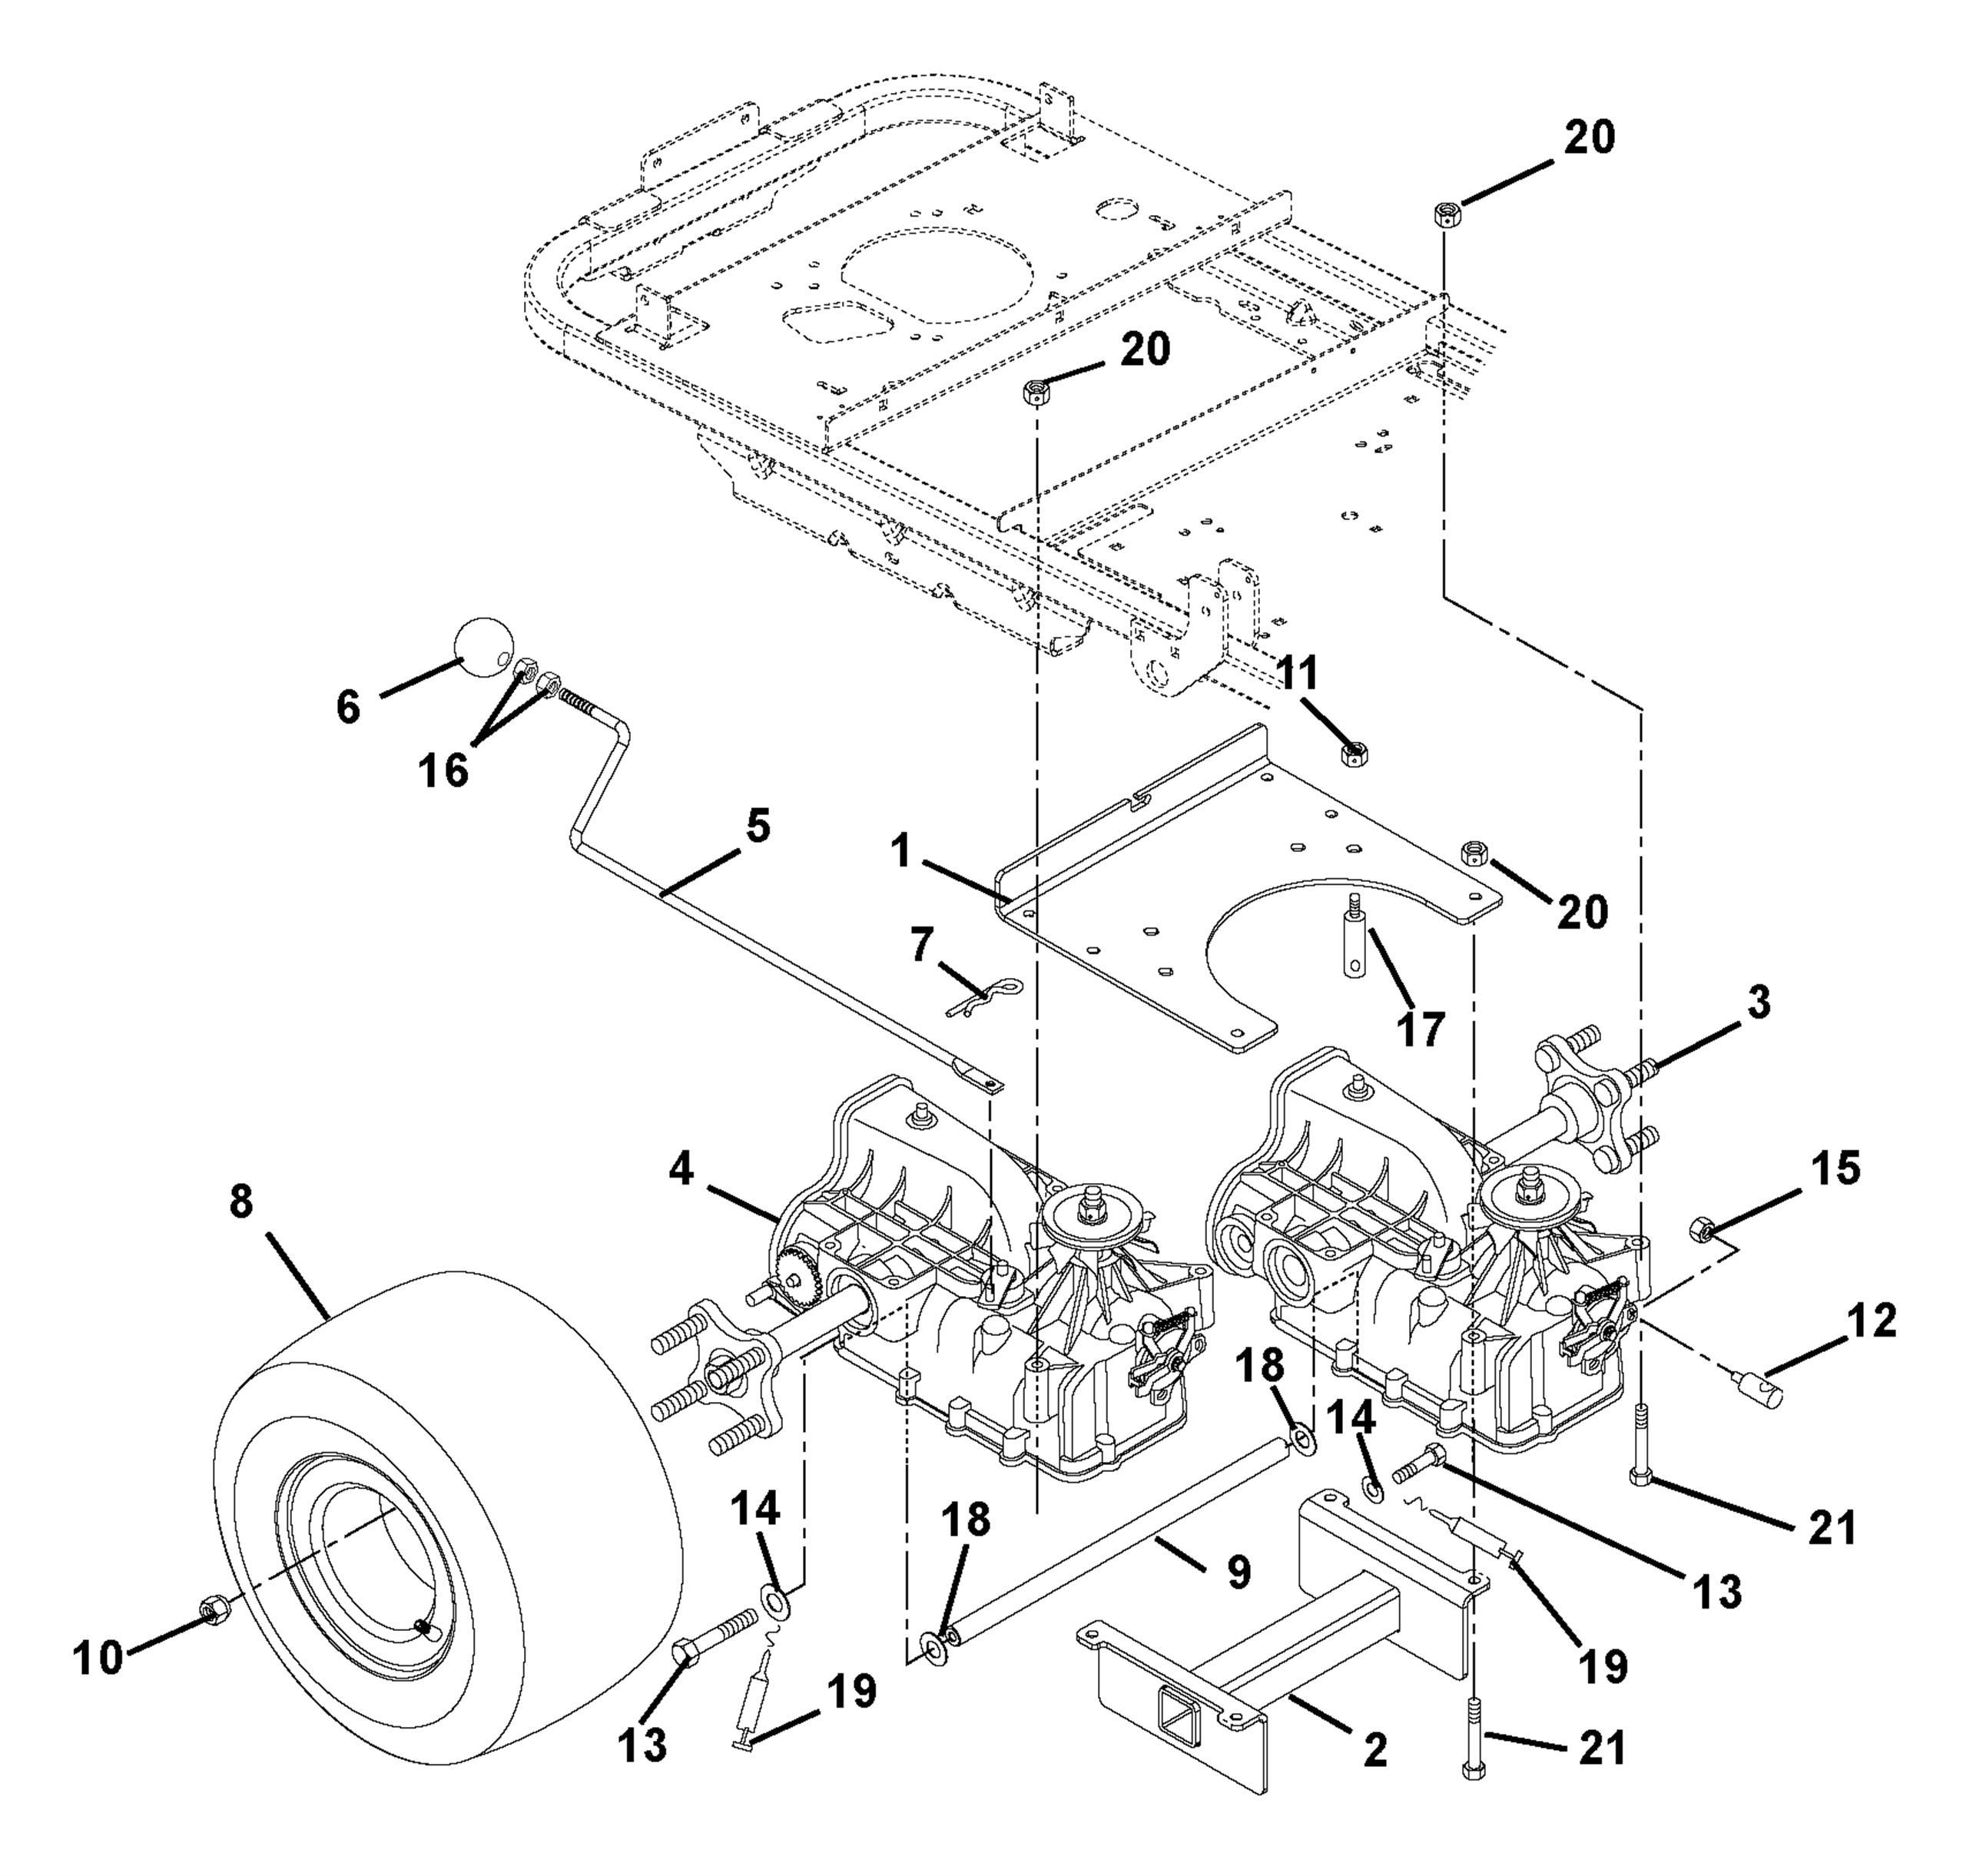 Transaxle Dump Valves And Rear Wheels